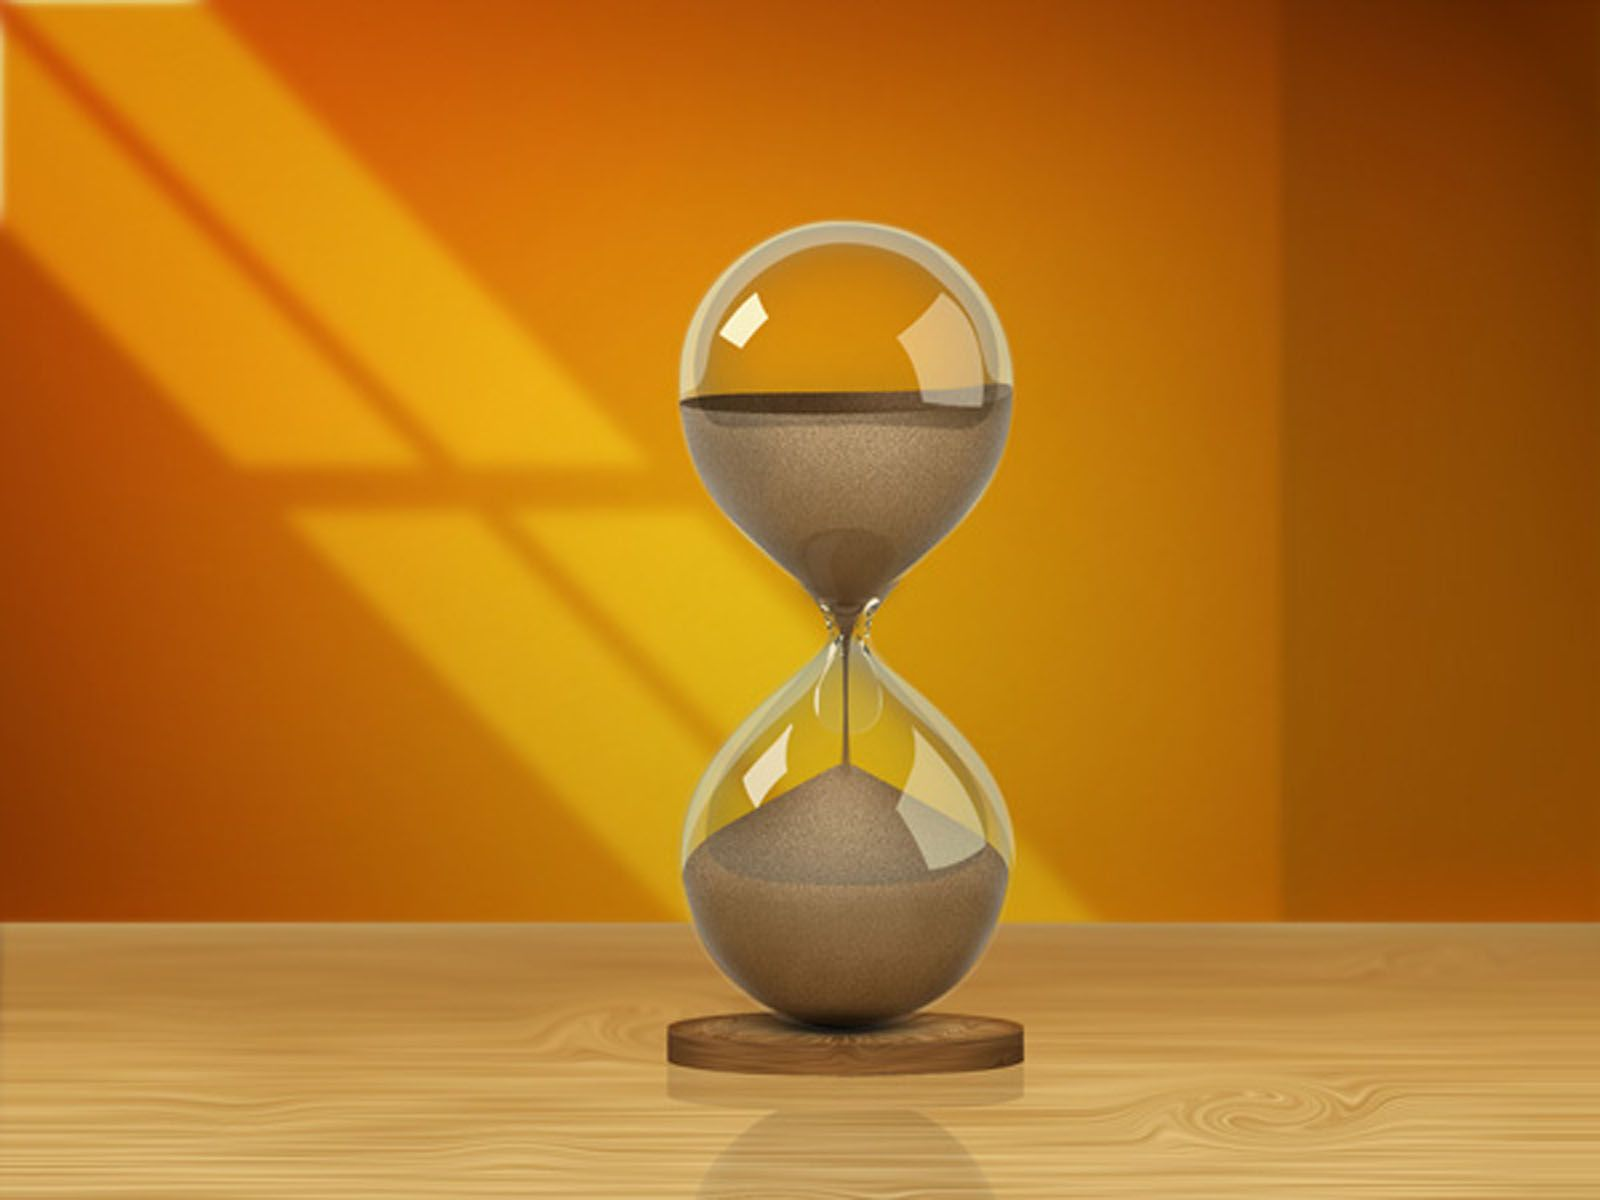 3d hourglass computer wallpaper 65048